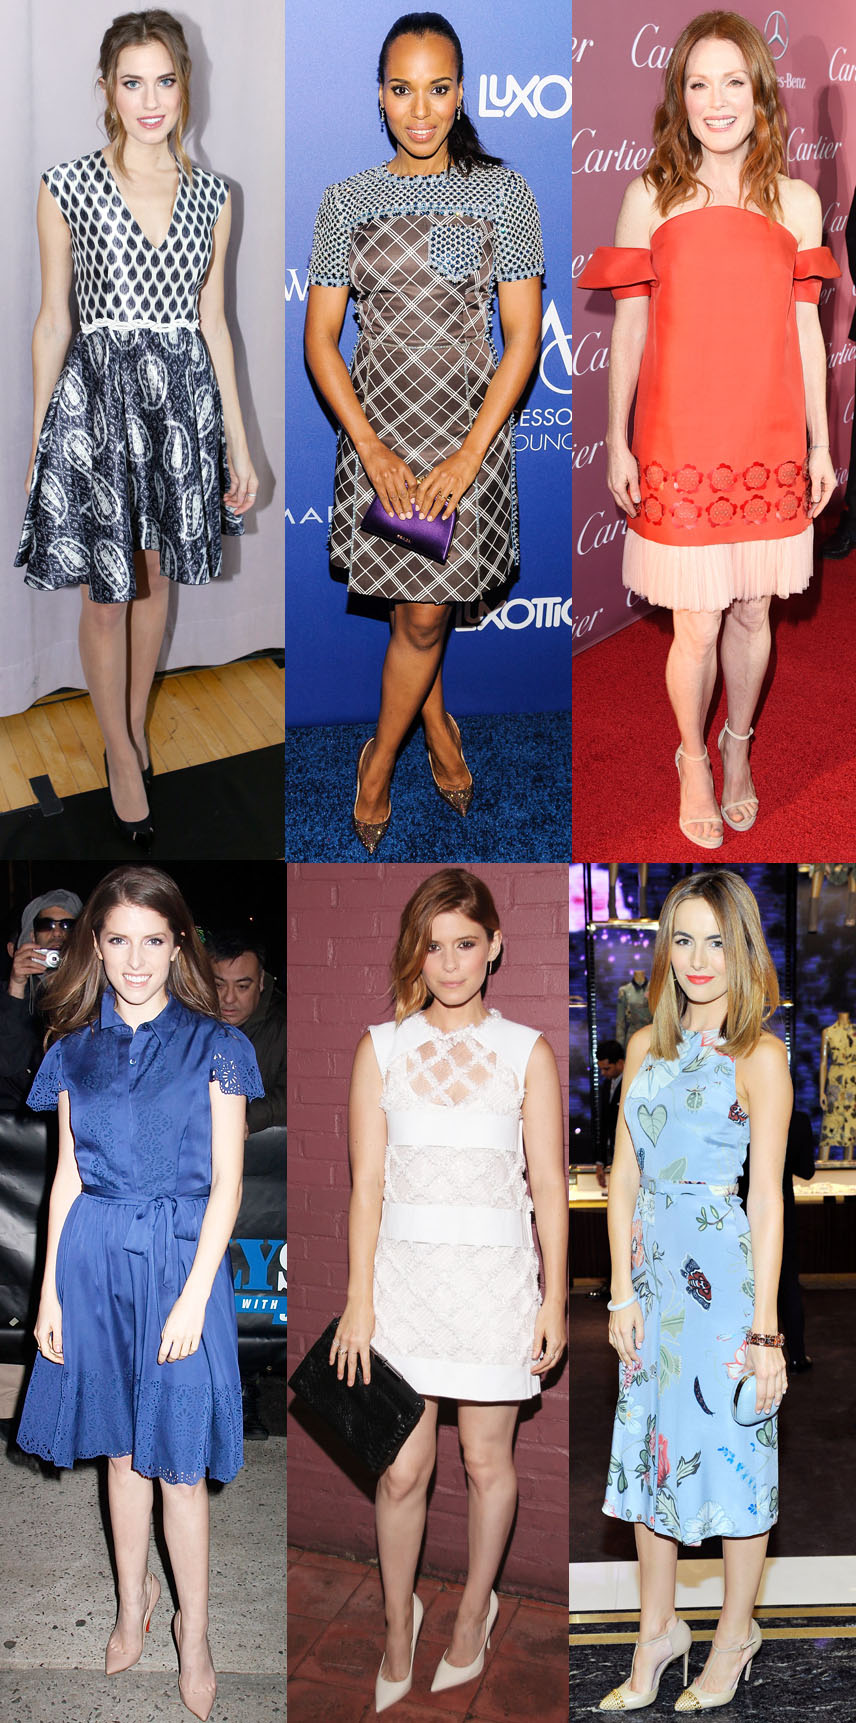 Allison Williams, Kerry Washington, Julianne Moore, Anna Kendrick, Kate Mara, & Camilla Belle.